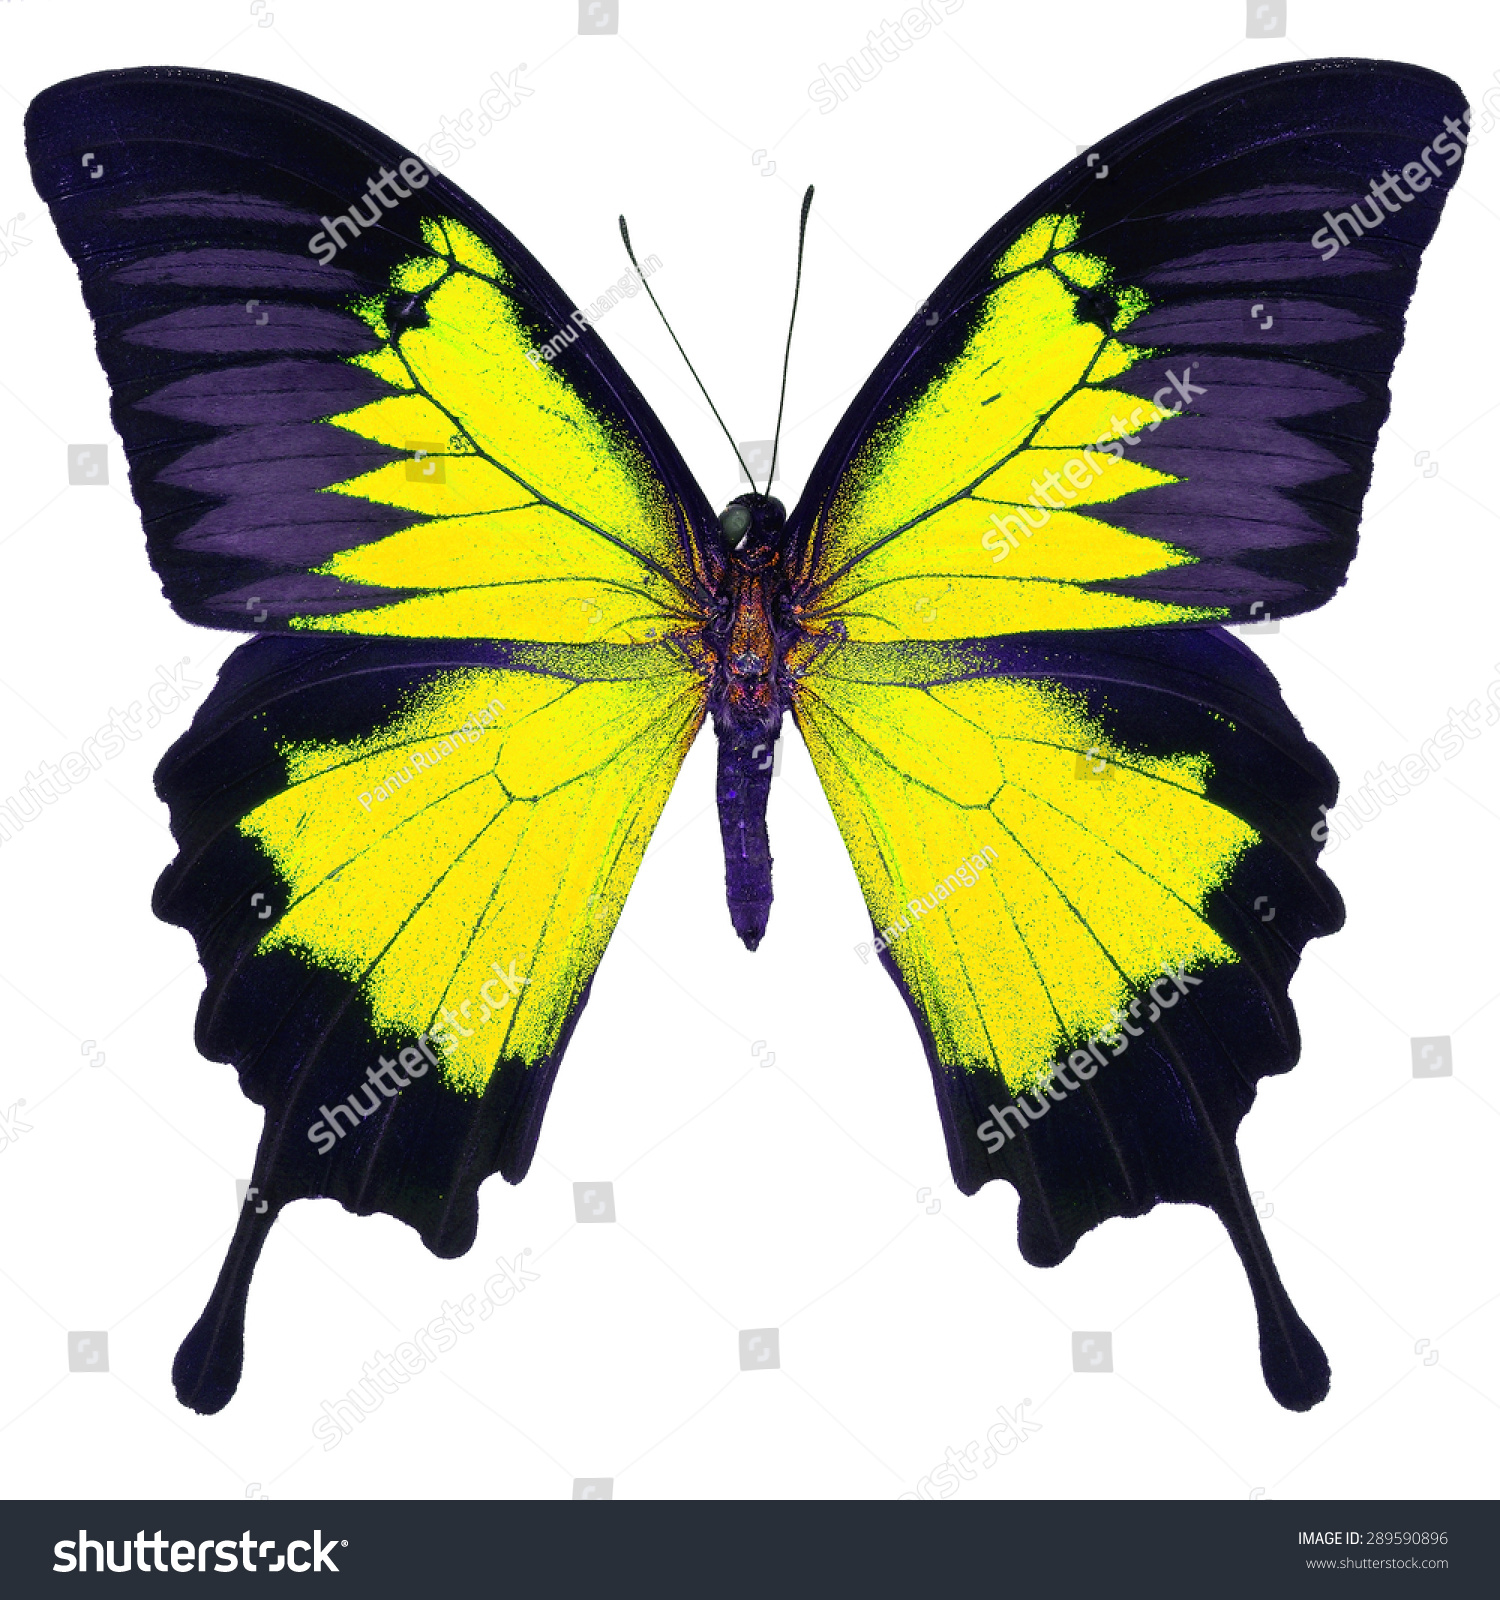 butterfly on yellow color - photo #37